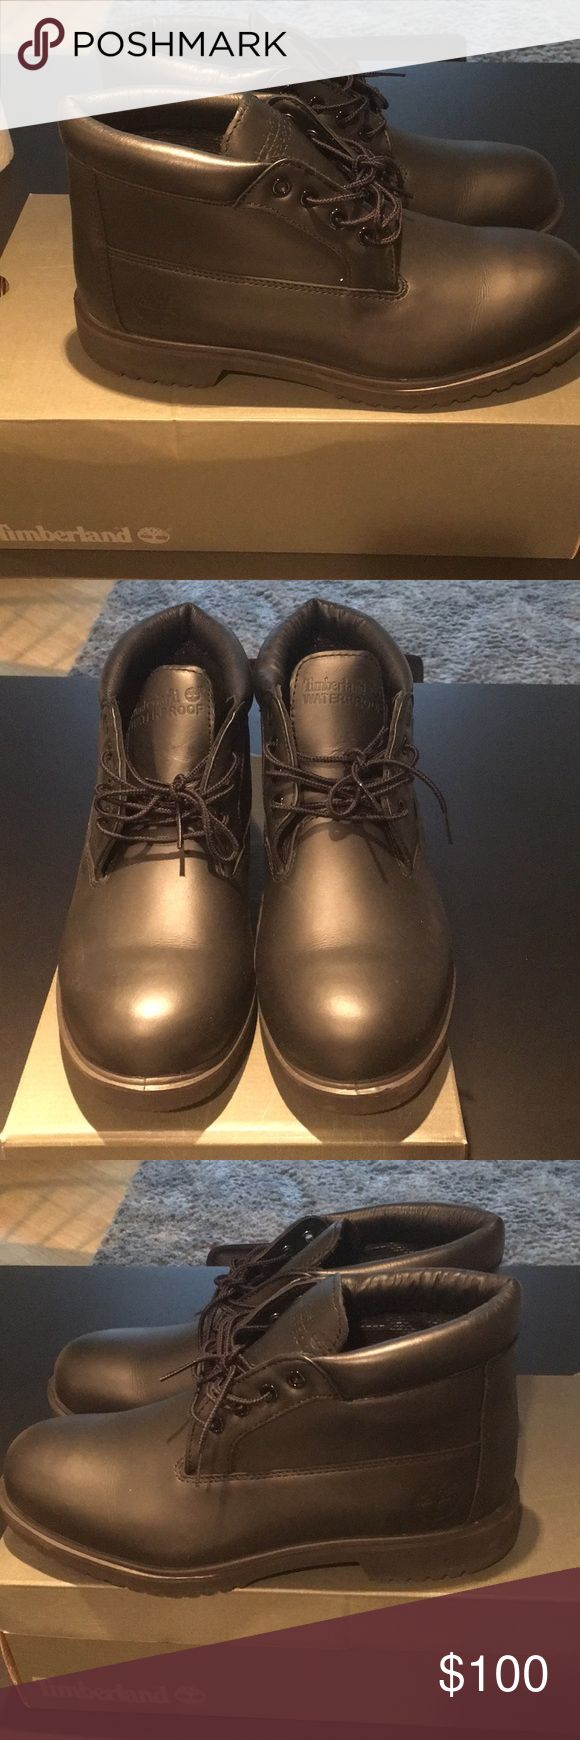 Black Timberland Chukka Boots Only worn once!! Excellent Condition | Waterproof $65 if you pal me Timberland Shoes Chukka Boots